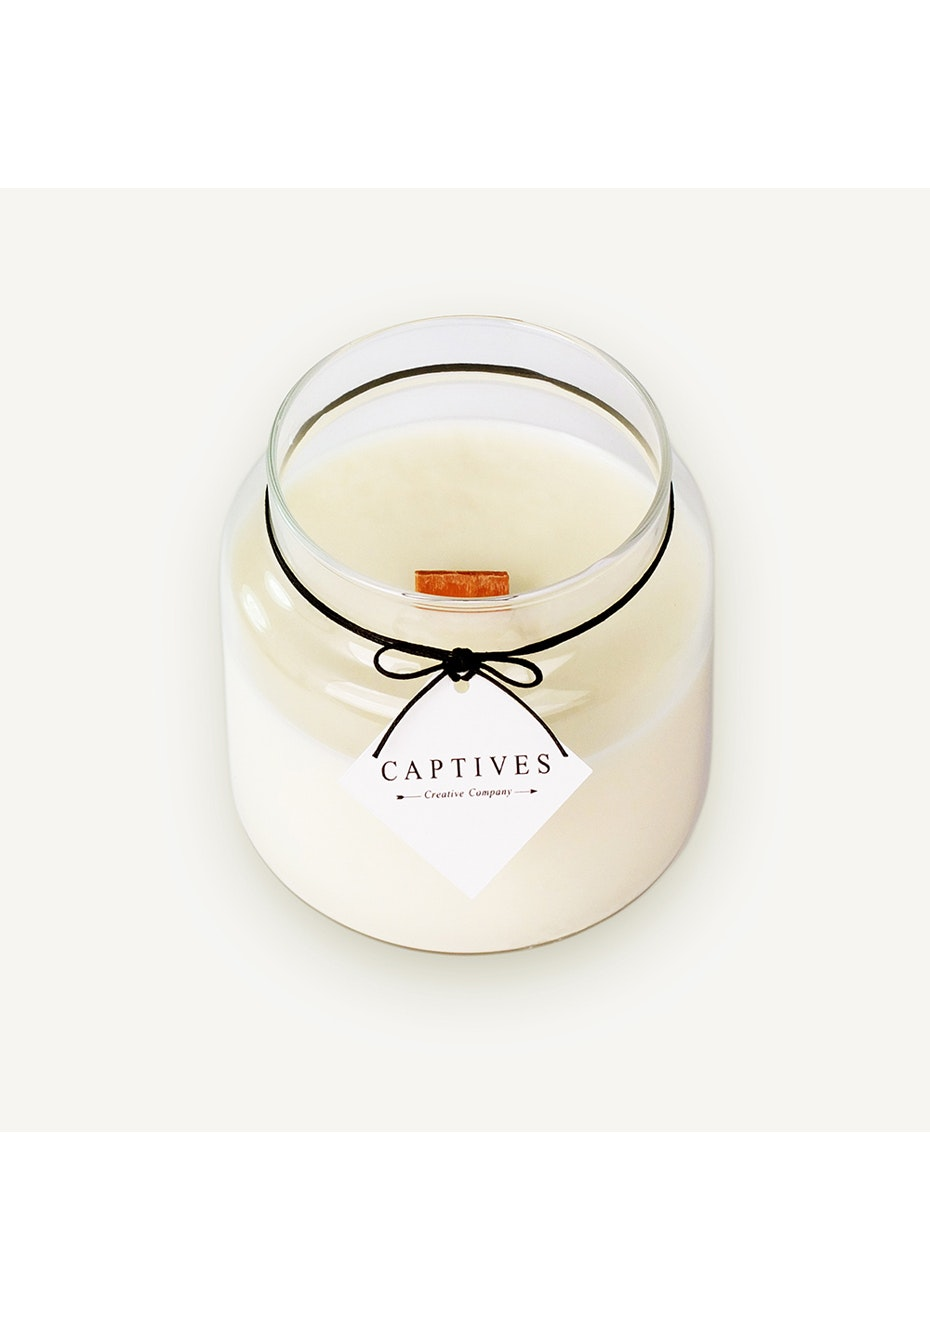 Captives Wood Wick Candle - Lychee/Black tea